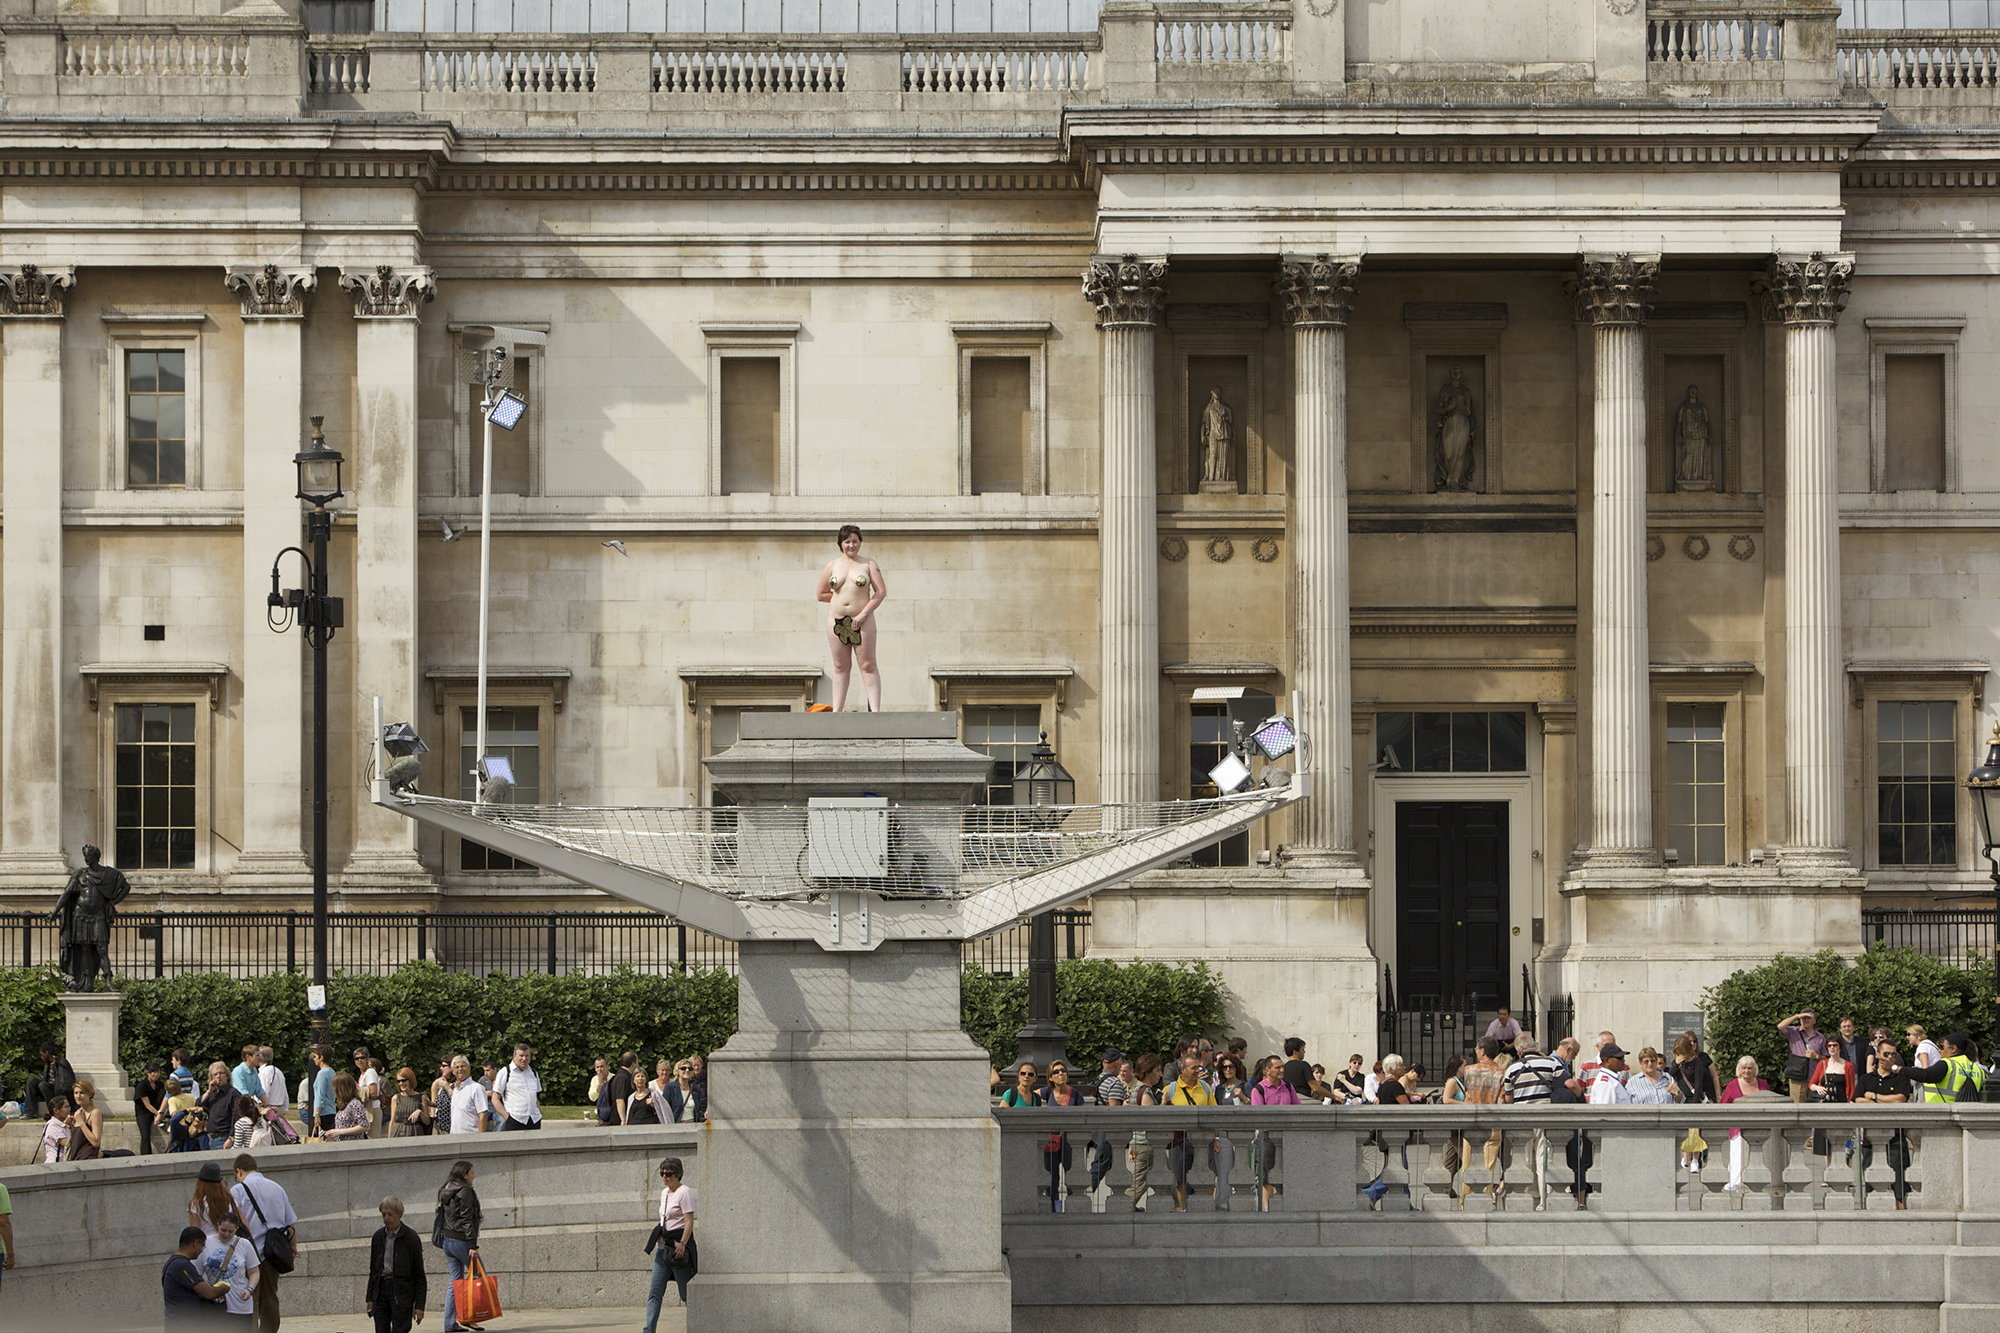 Naked woman standing atop the Fourth Plinth